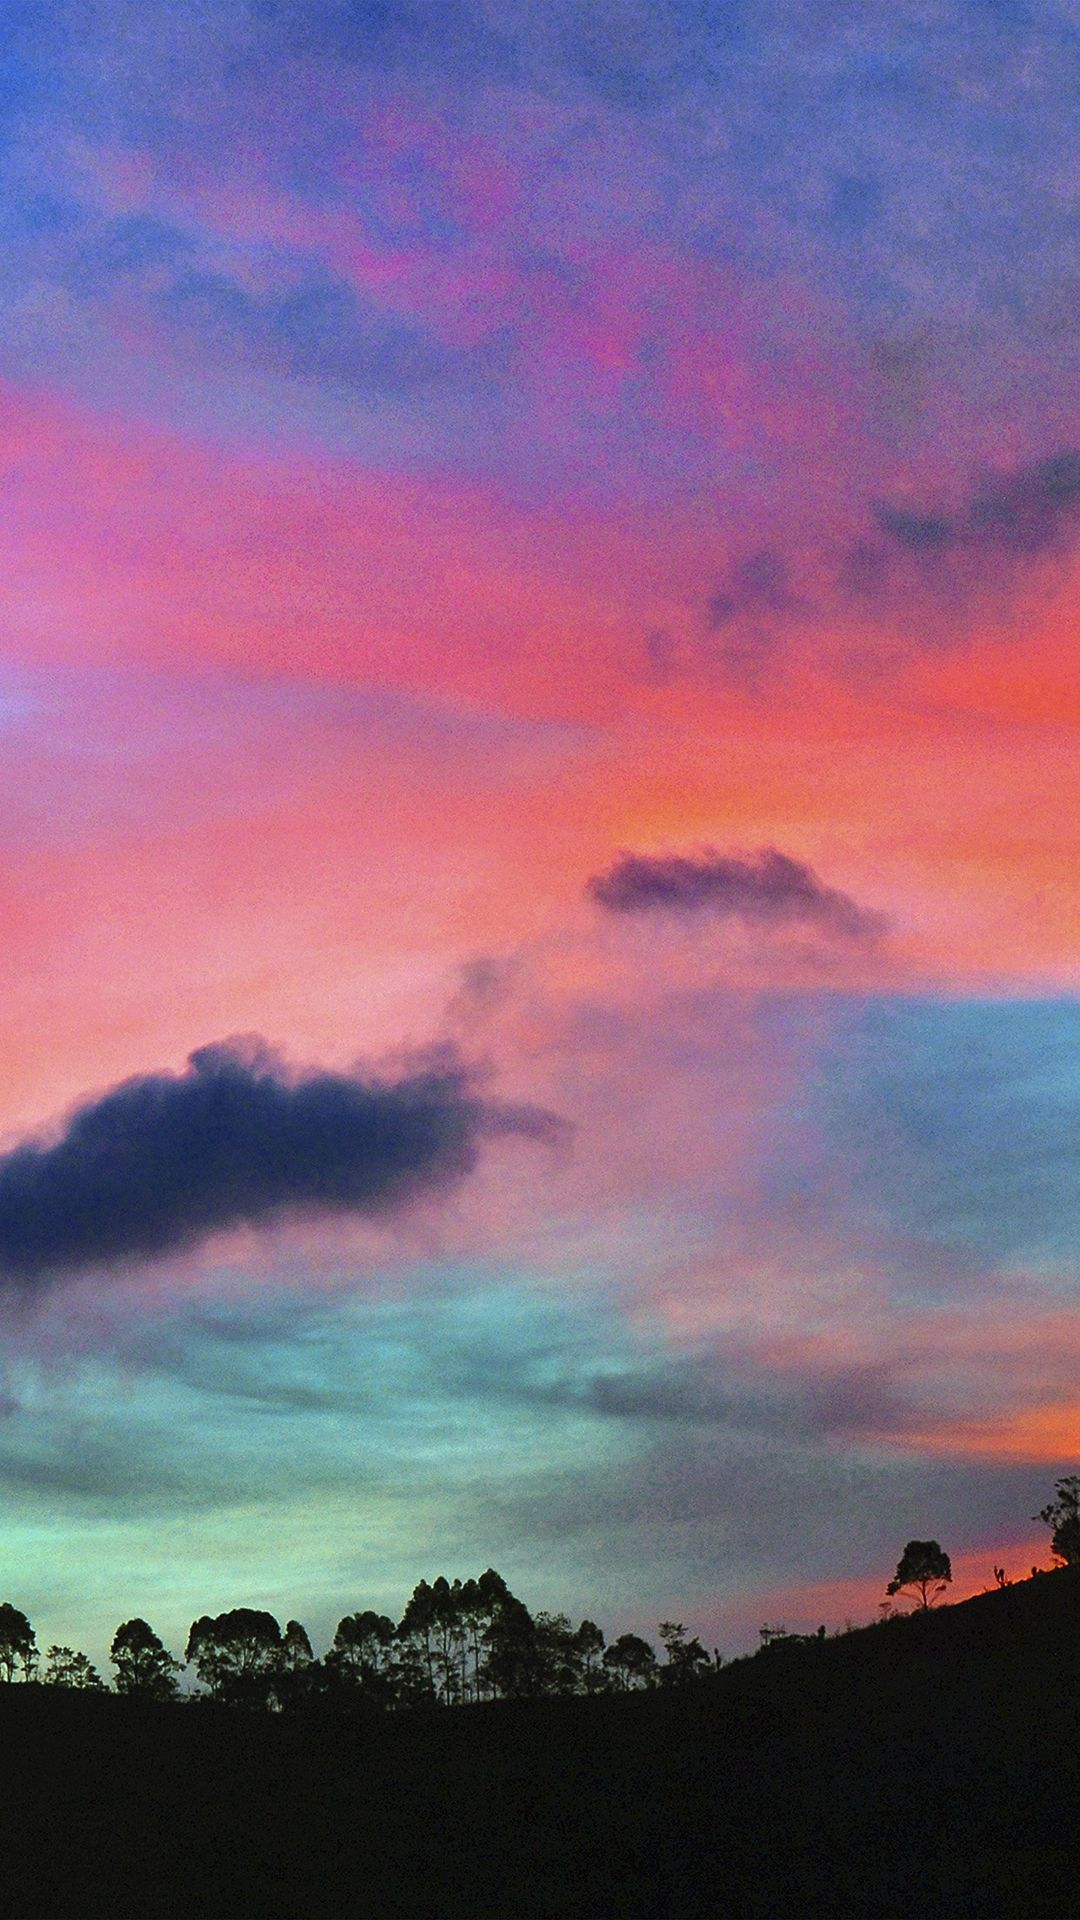 Wallpaper iphone sky - Sky Rainbow Cloud Sunset Nature Iphone 6 Wallpaper